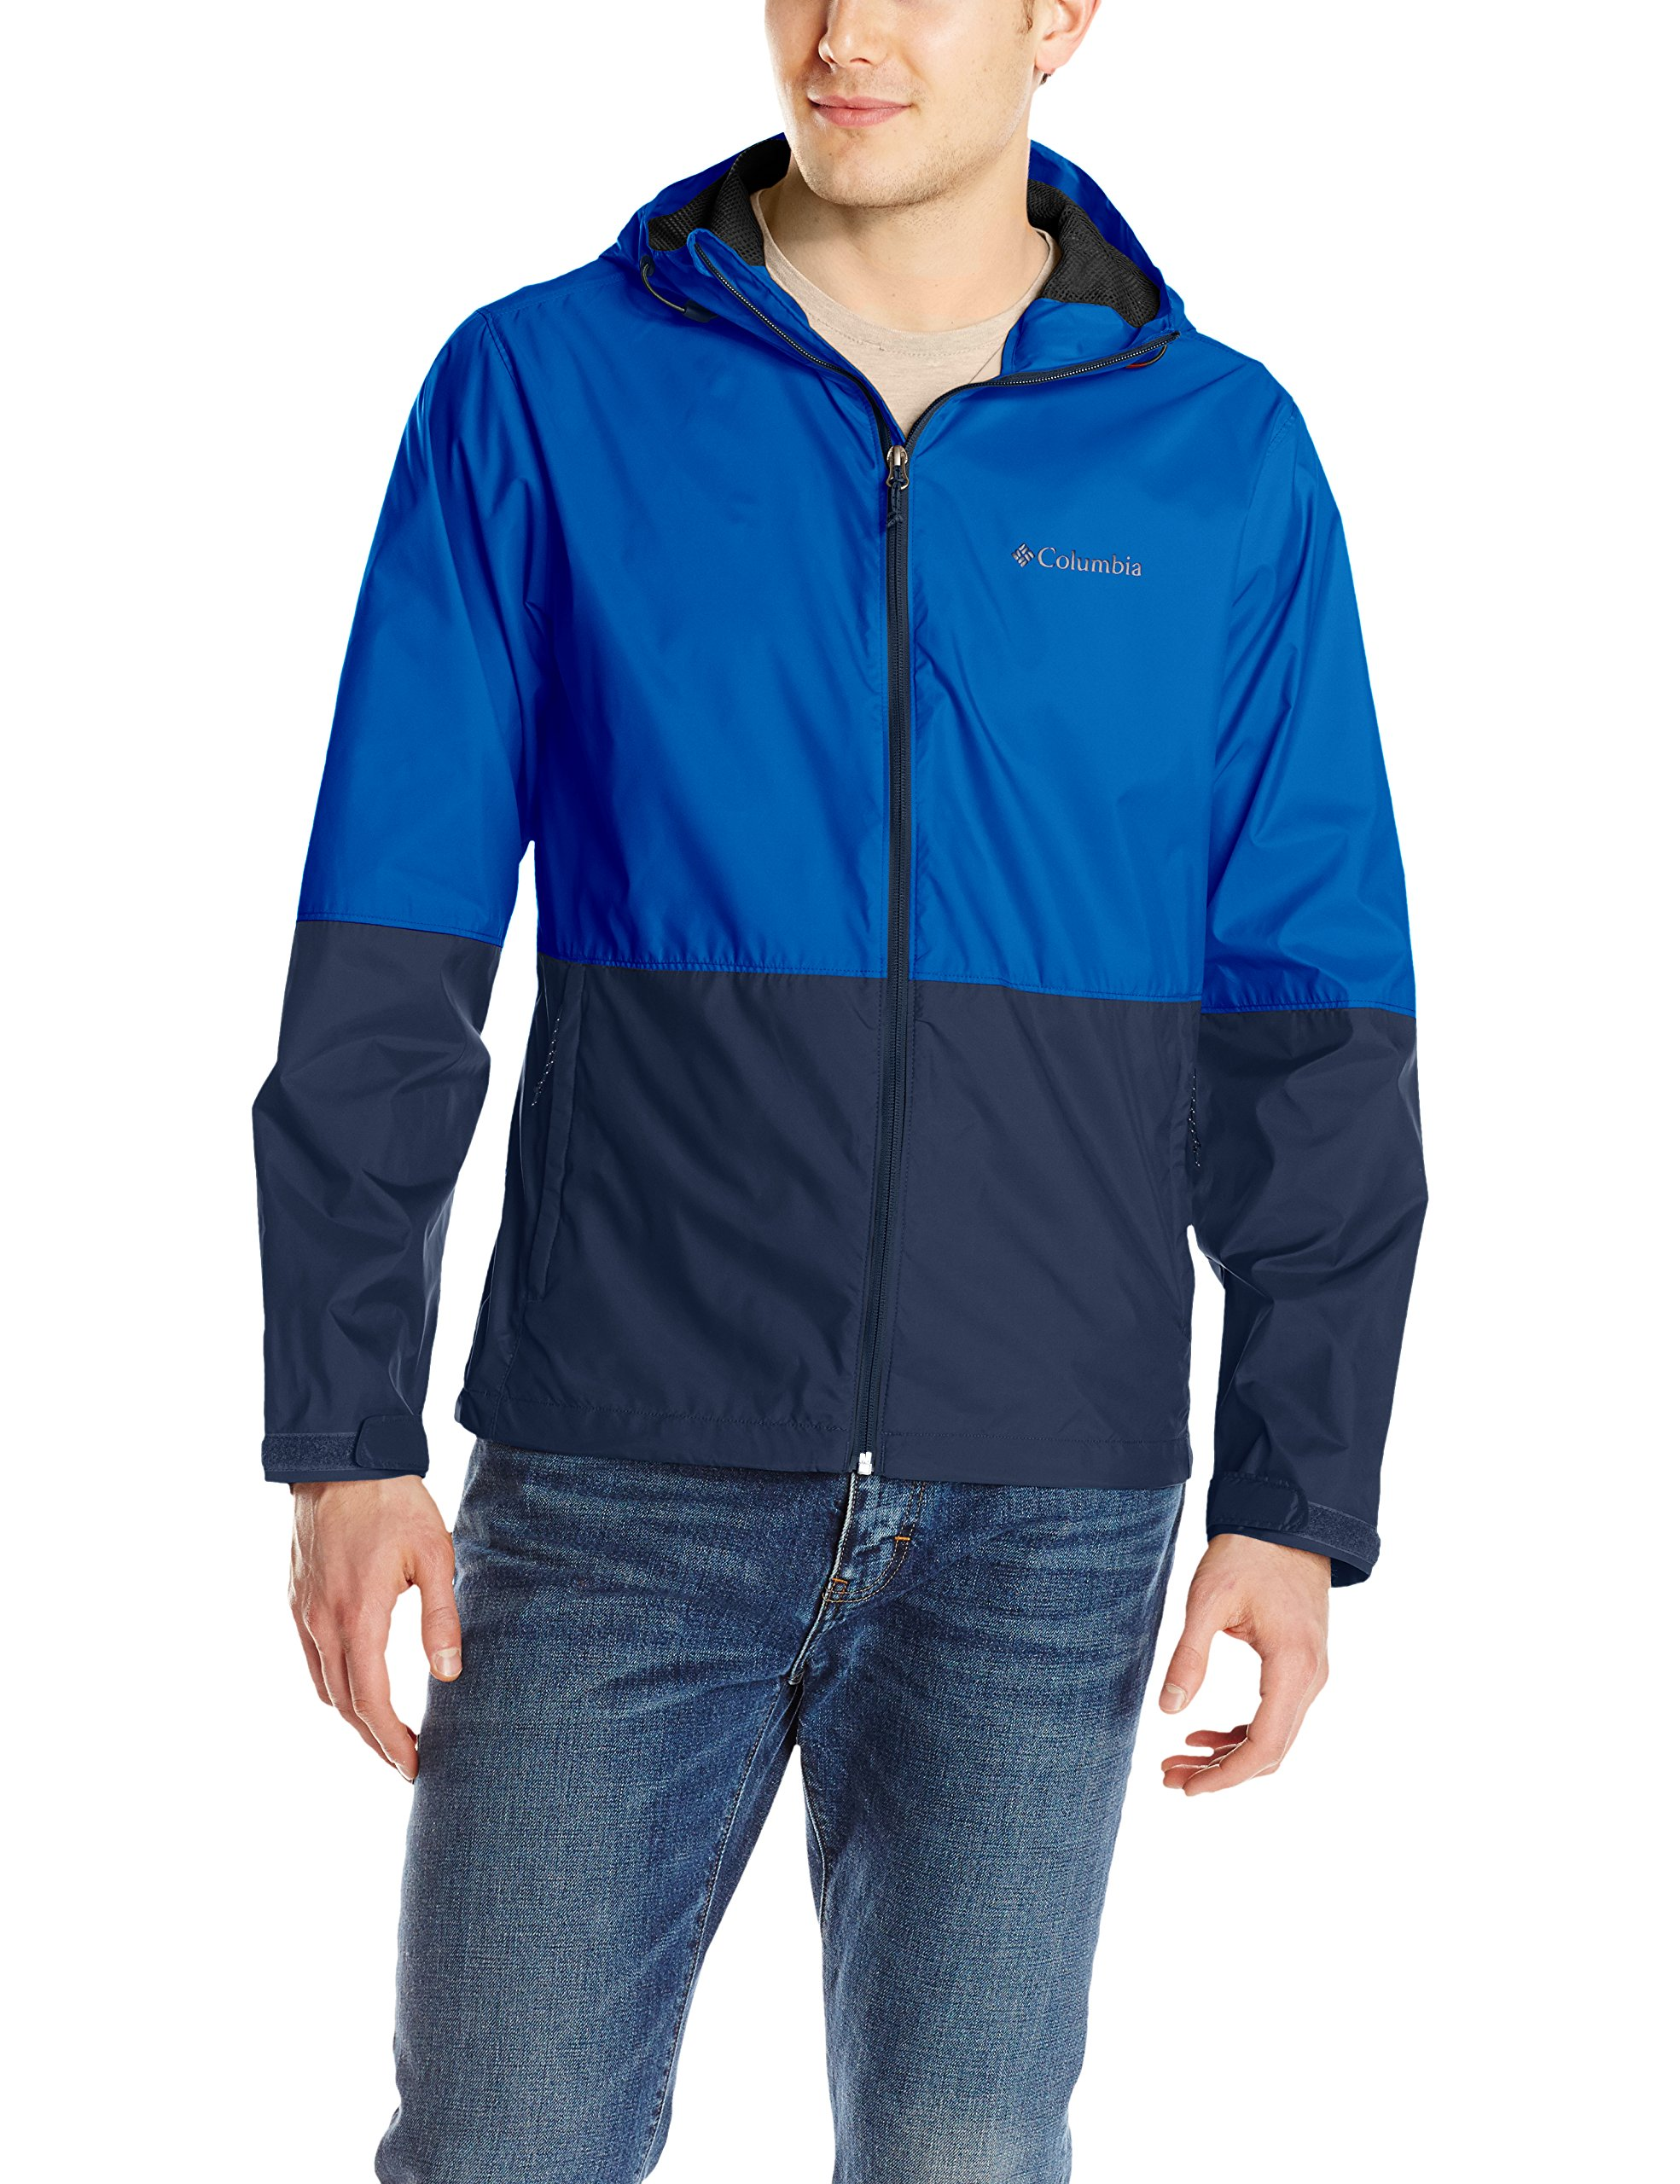 Columbia Men's Roan Mountain Jacket, Azul, Collegiate Navy, L by Columbia